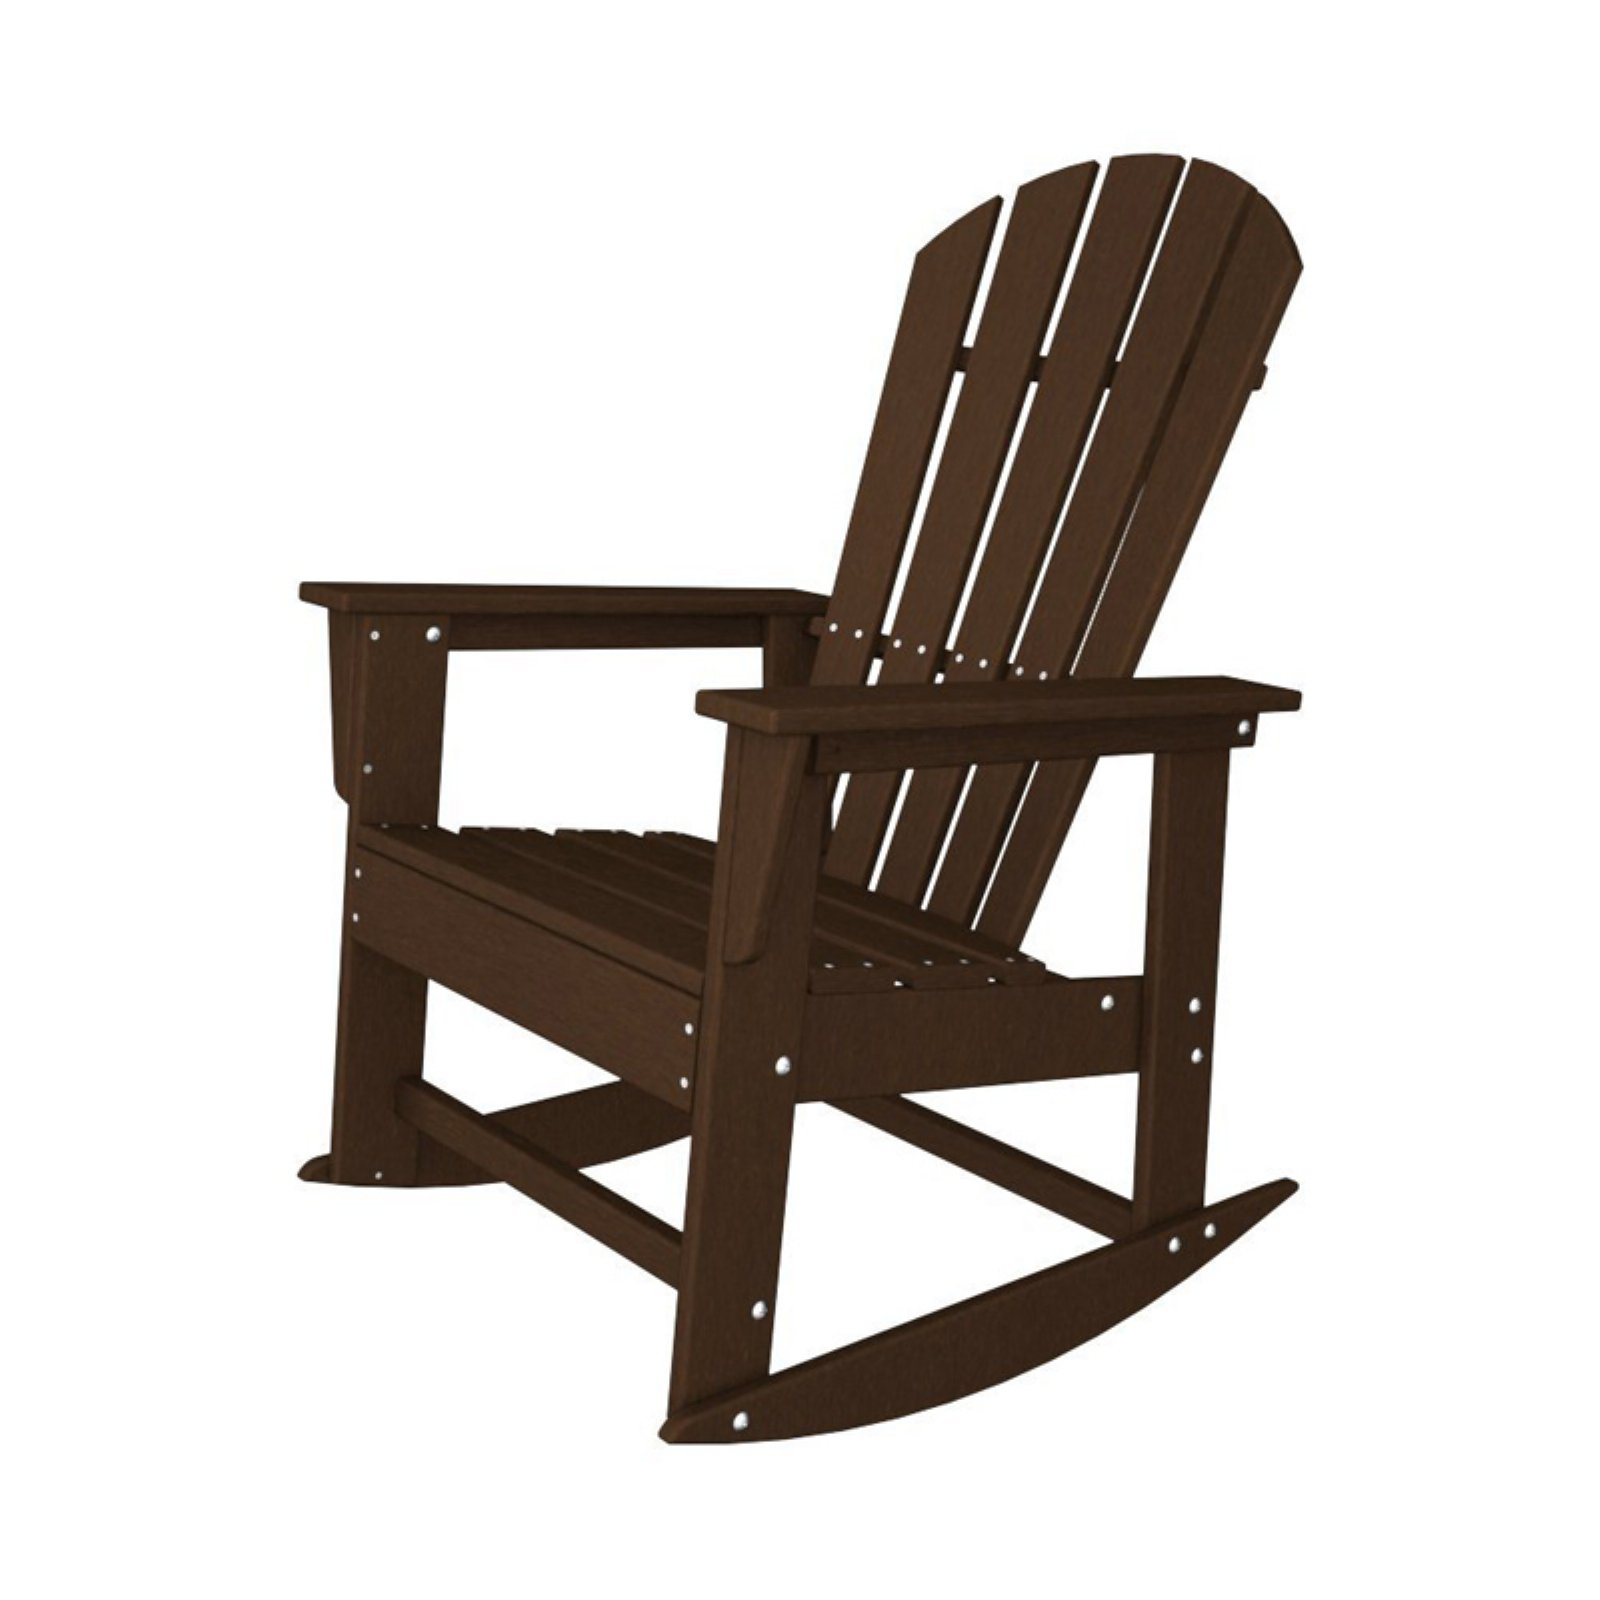 POLYWOOD® South Beach Recycled Plastic Adirondack Rocking Chair